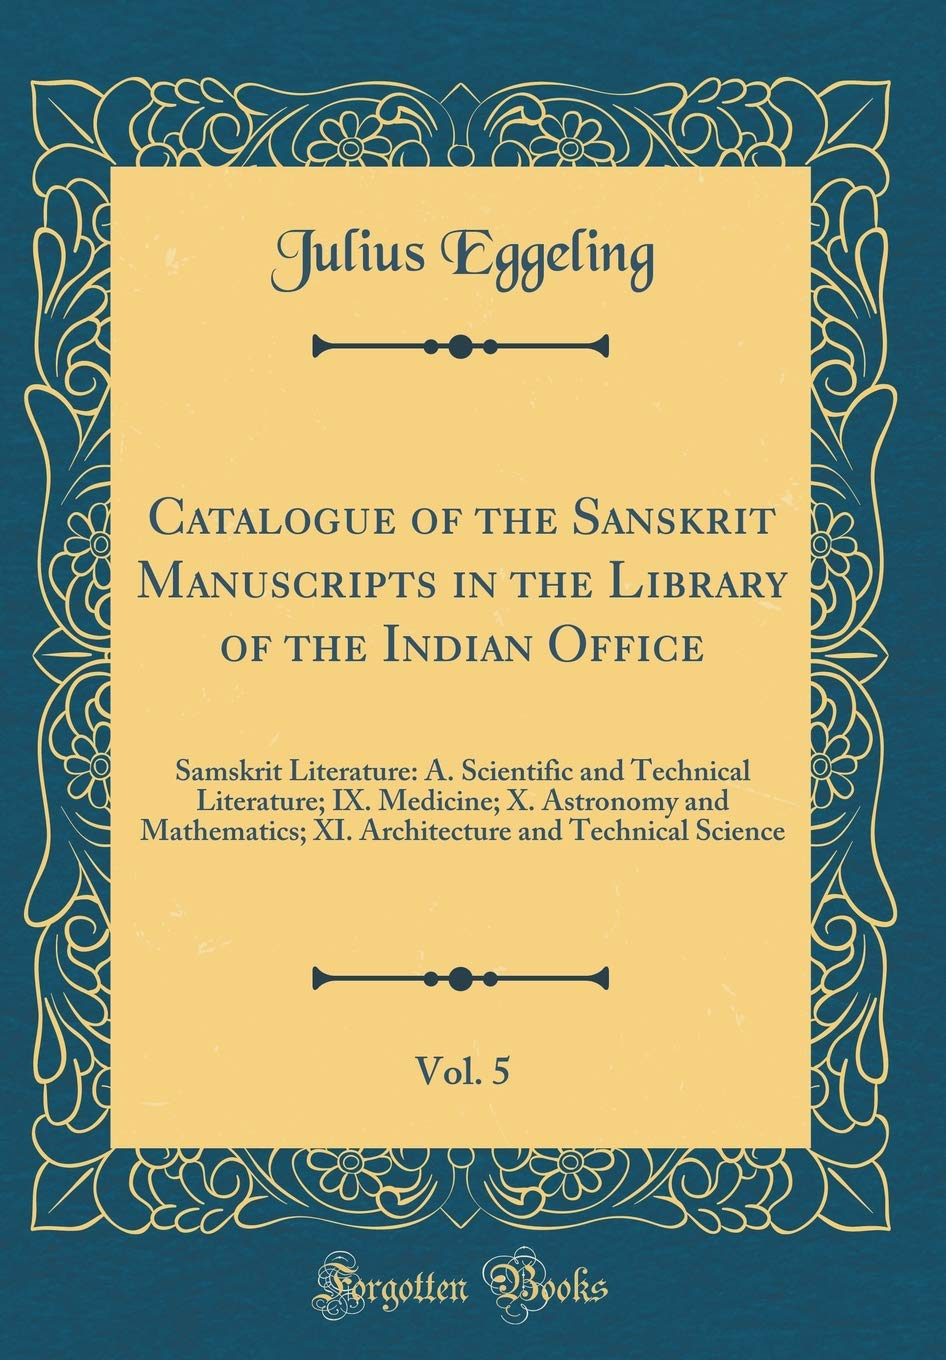 Catalogue of the Sanskrit Manuscripts in the Library of the Indian Office, Vol. 5: Samskrit Literature: A. Scientific and Technical Literature; IX. ... and Technical Science (Classic Reprint) pdf